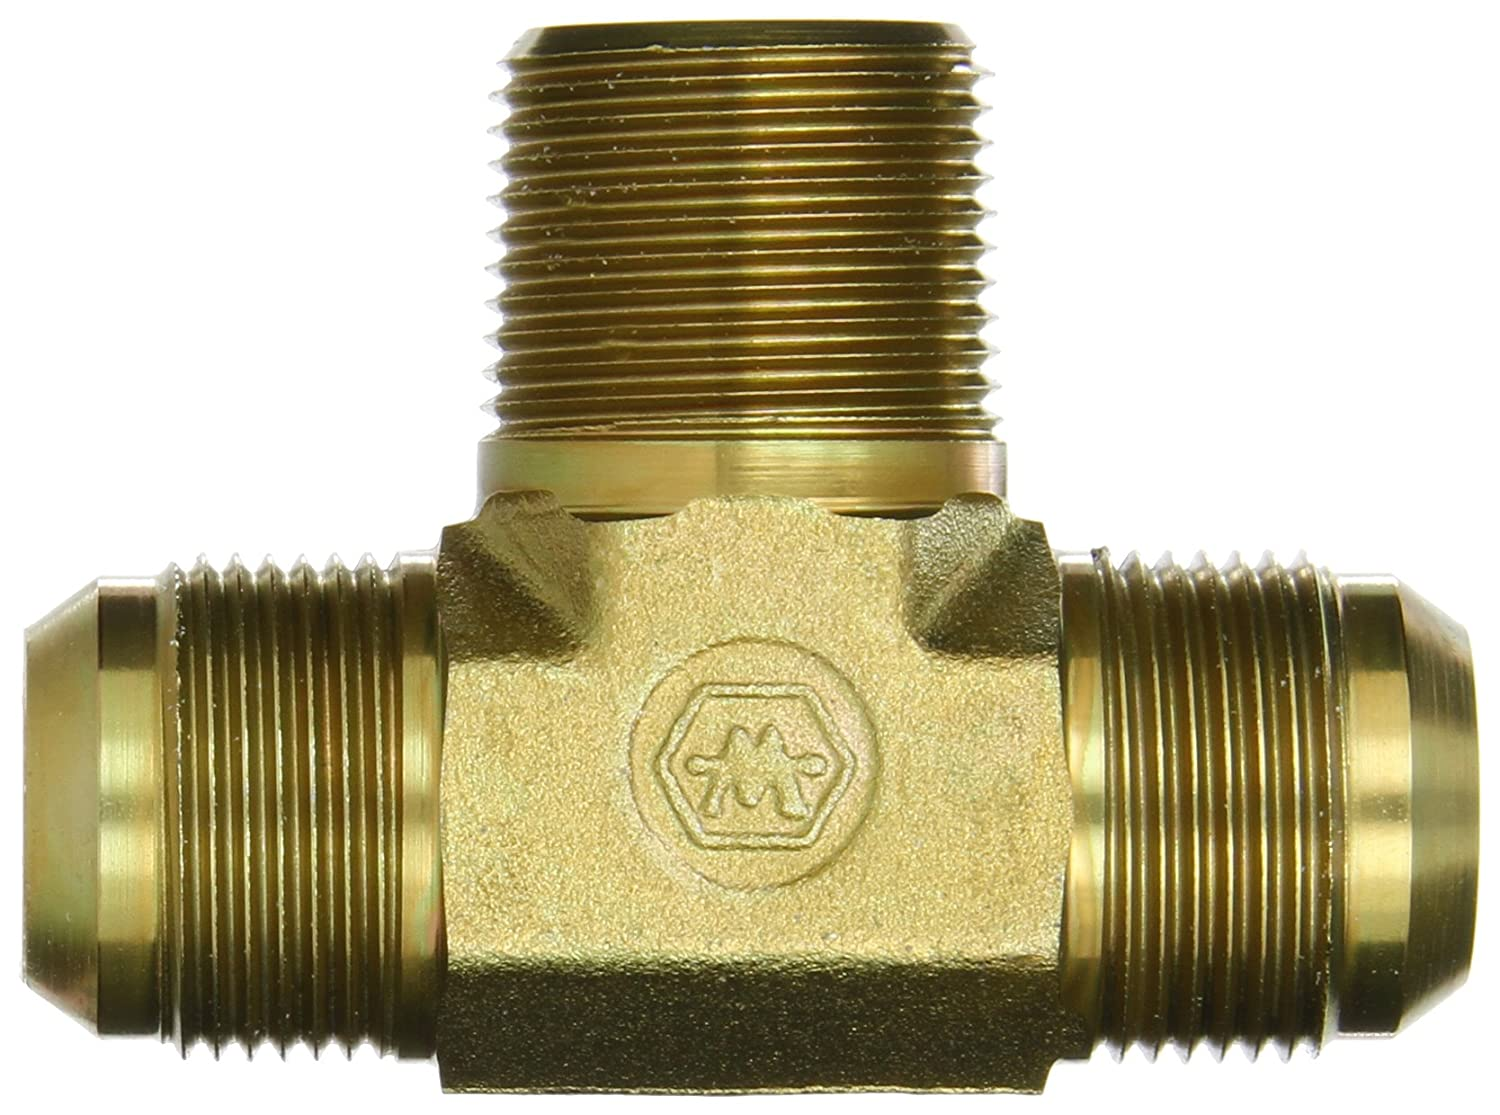 JIC Flare-Twin Fitting 1 NPT Male x 1 JIC Male Eaton Weatherhead C5605X16 Carbon Steel SAE 37 Degree Branch Tee